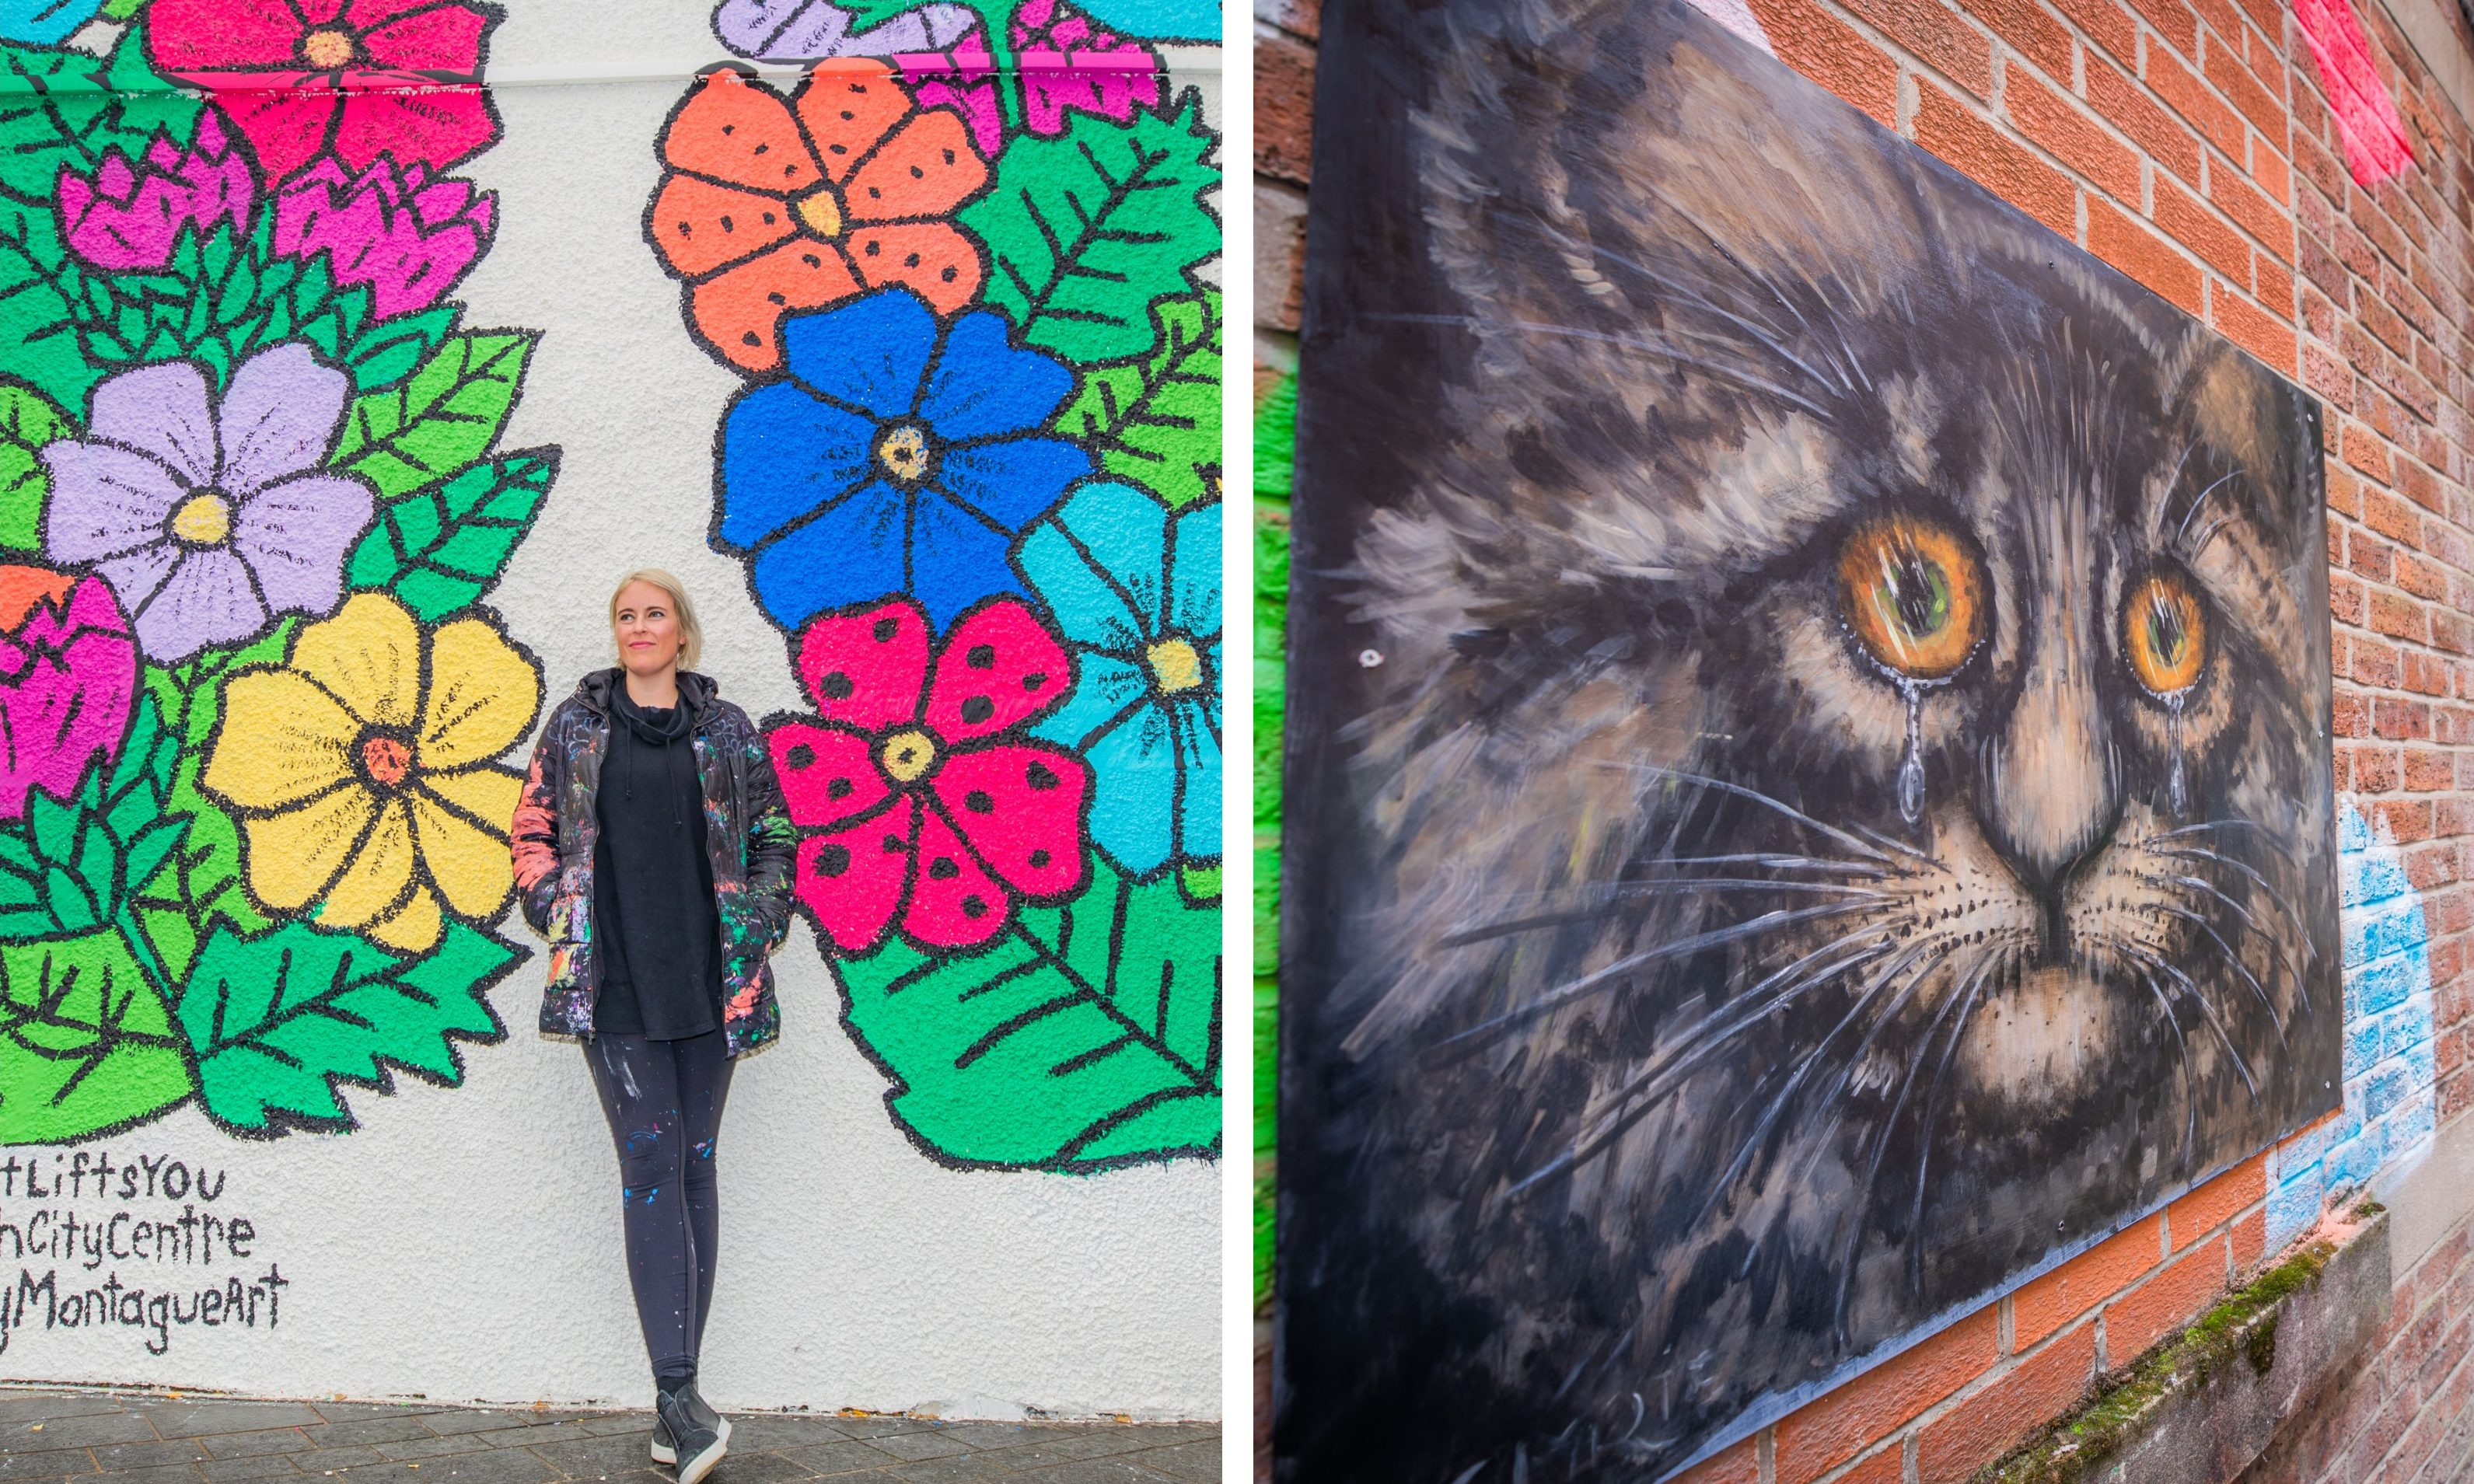 Left: Kelsy with her finished work in Perth. Right: Ian Imrie's art.